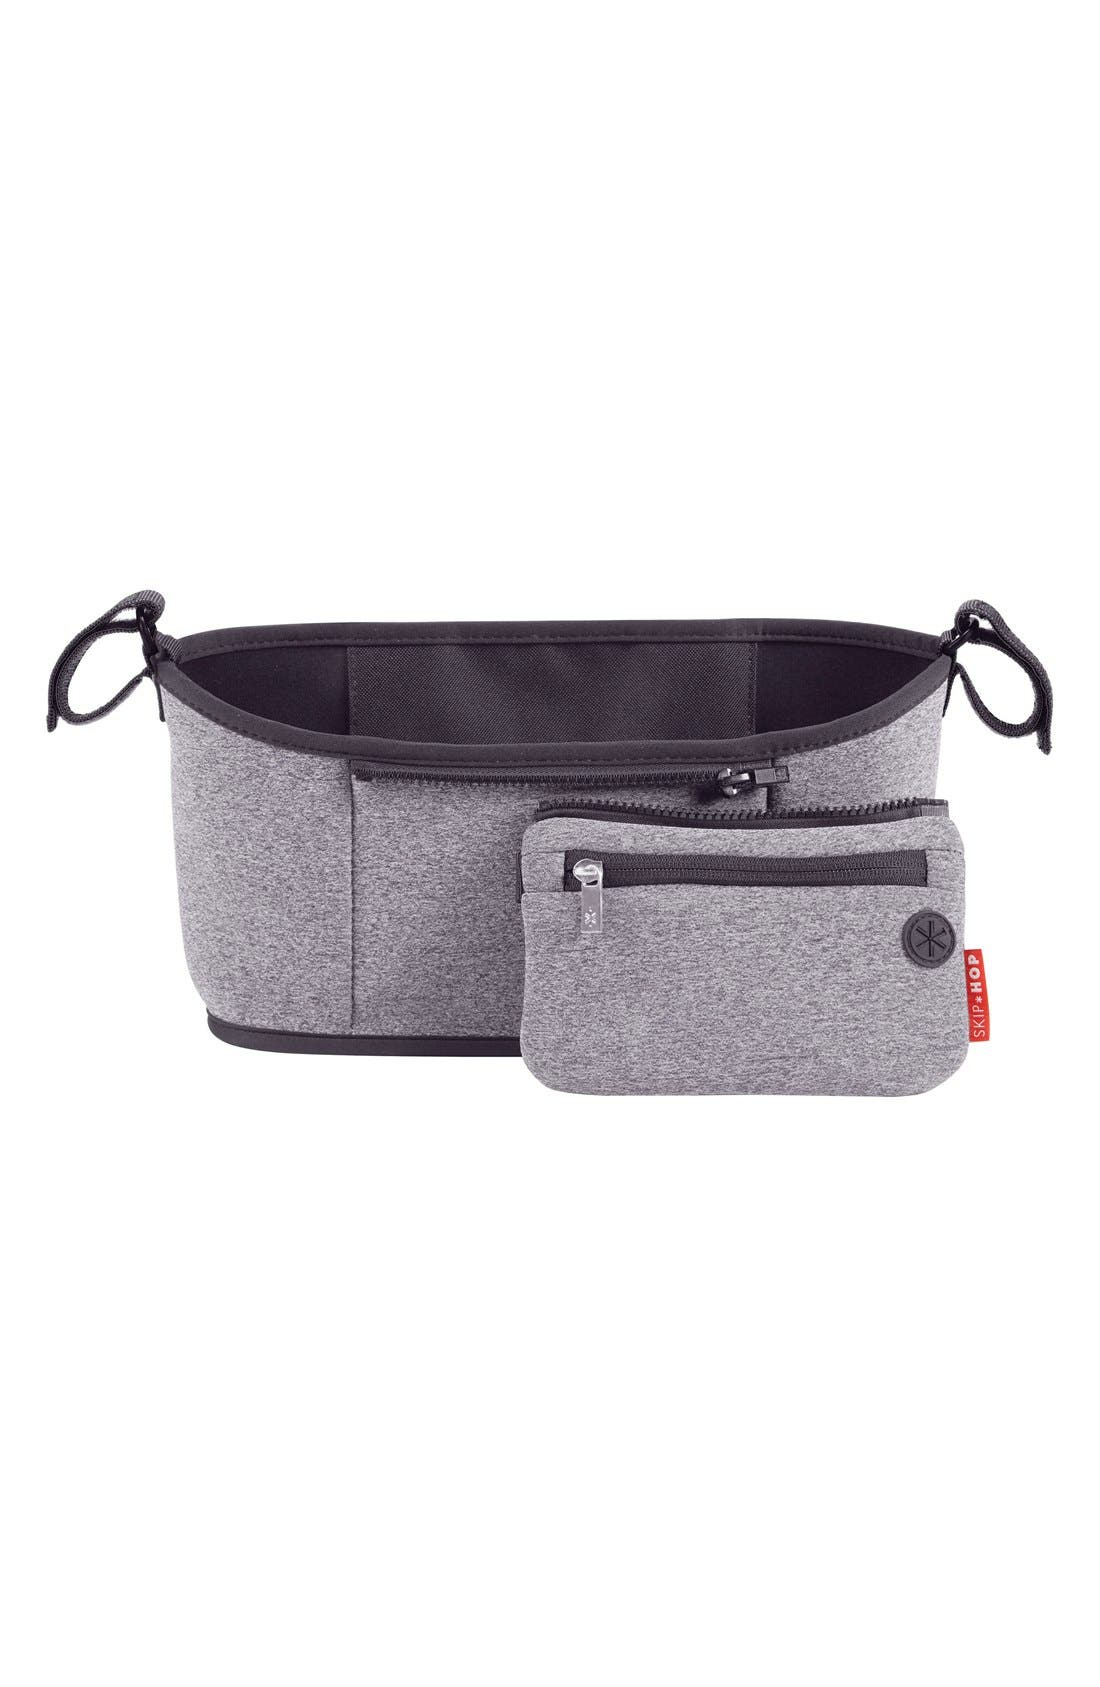 'Grab & Go' Stroller Organizer,                             Main thumbnail 1, color,                             Heather Grey